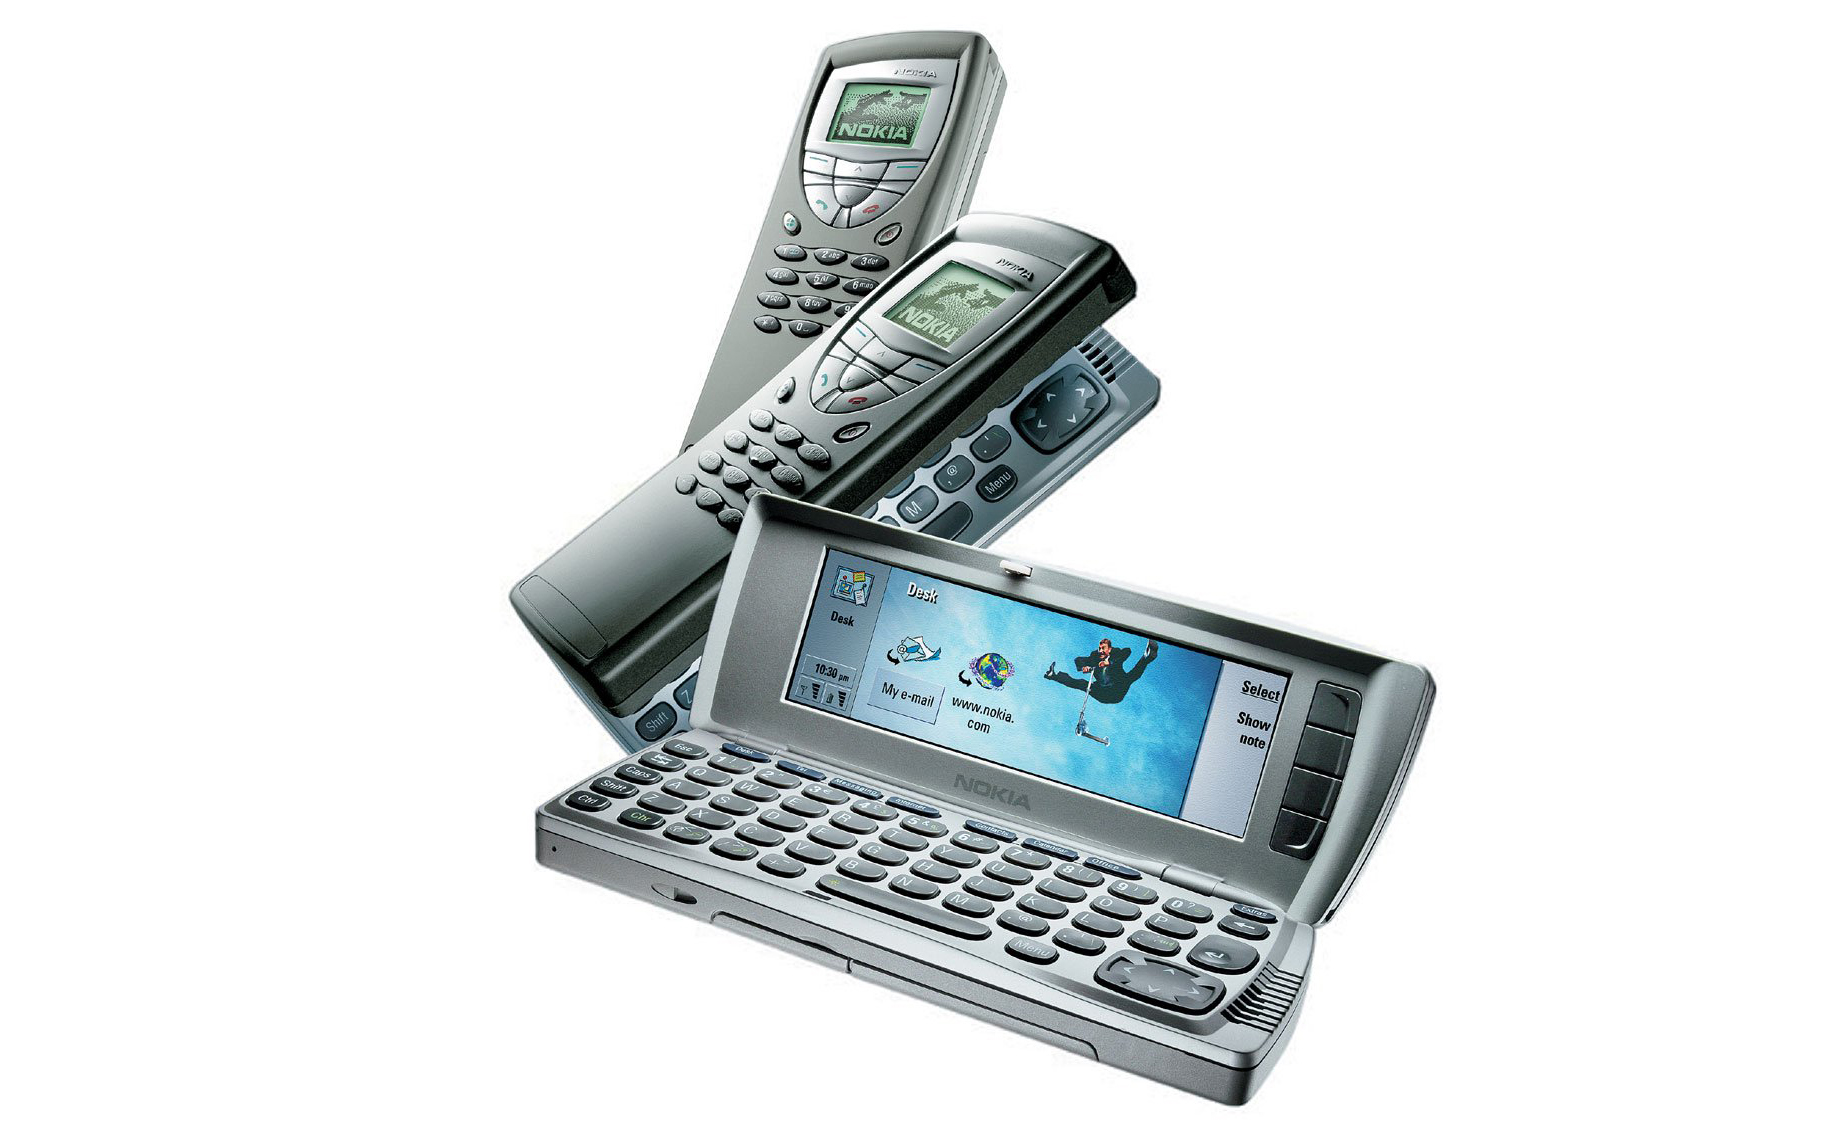 15 Popular Phones of All Time - 10